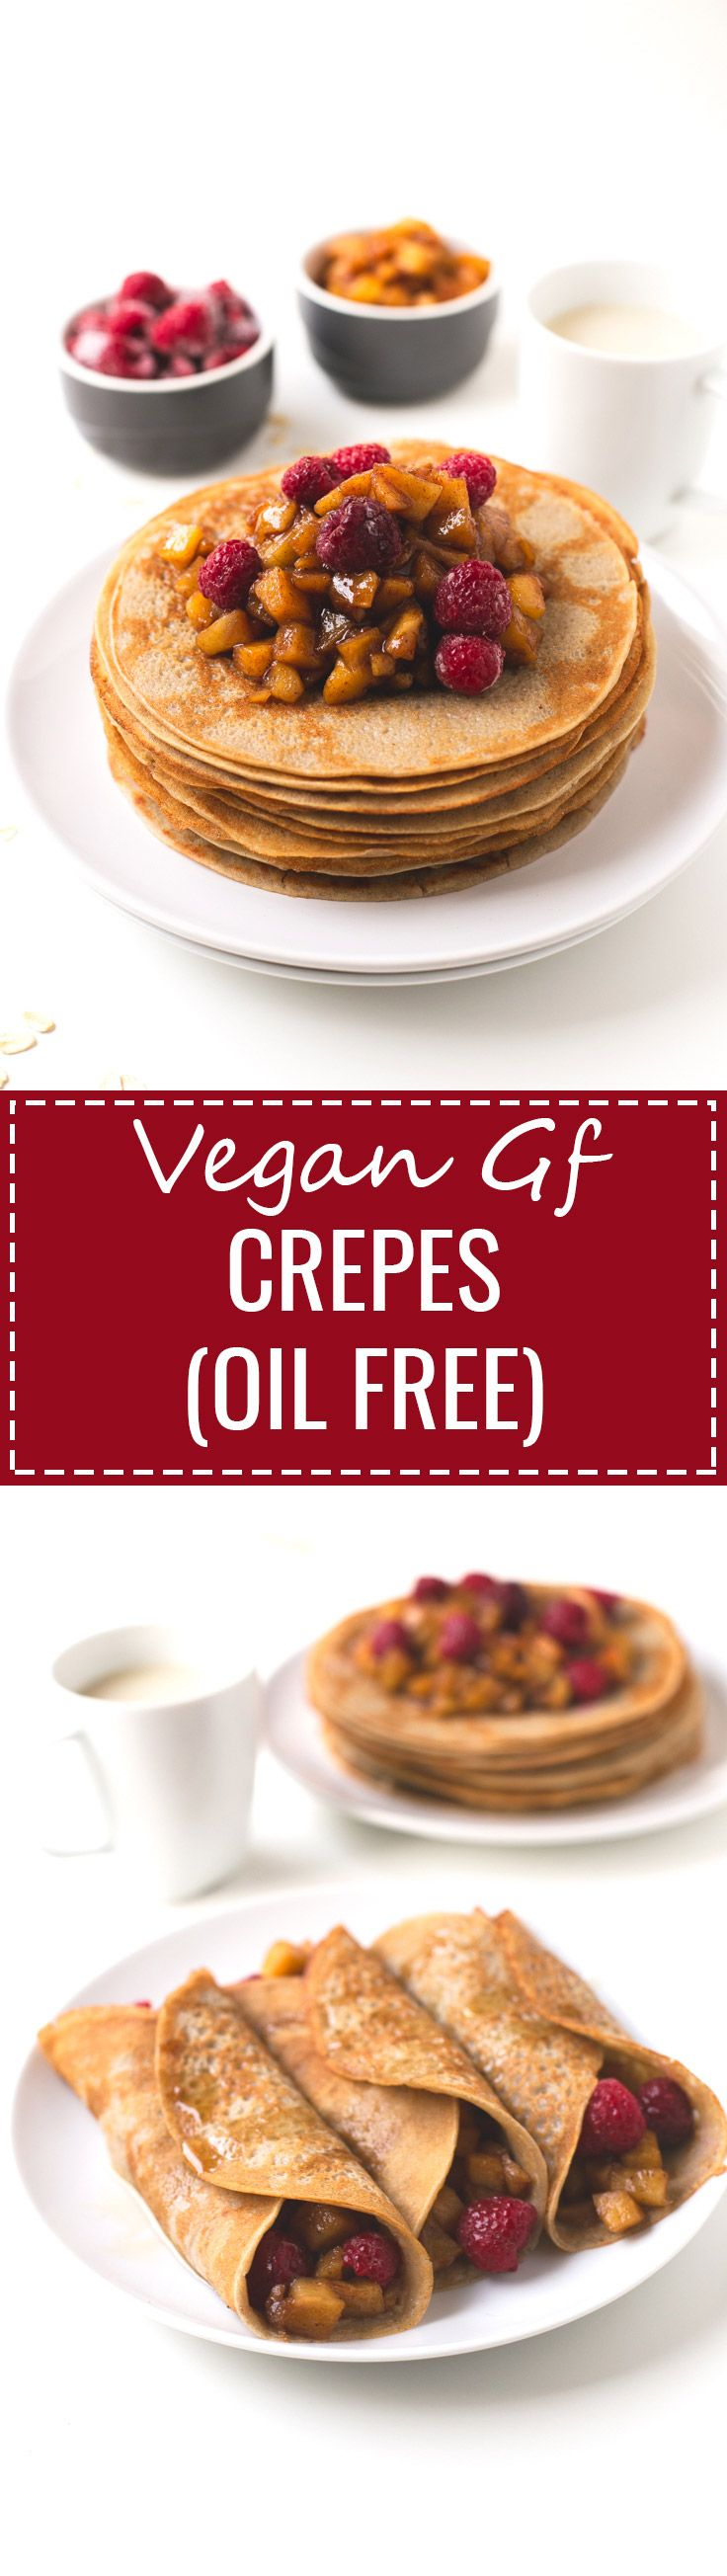 (Vegan and GF) Vegan gluten-free crepes (oil-free) - We've improved our popular vegan crepes recipe and now they're also gluten-free, healthier and taste even better!